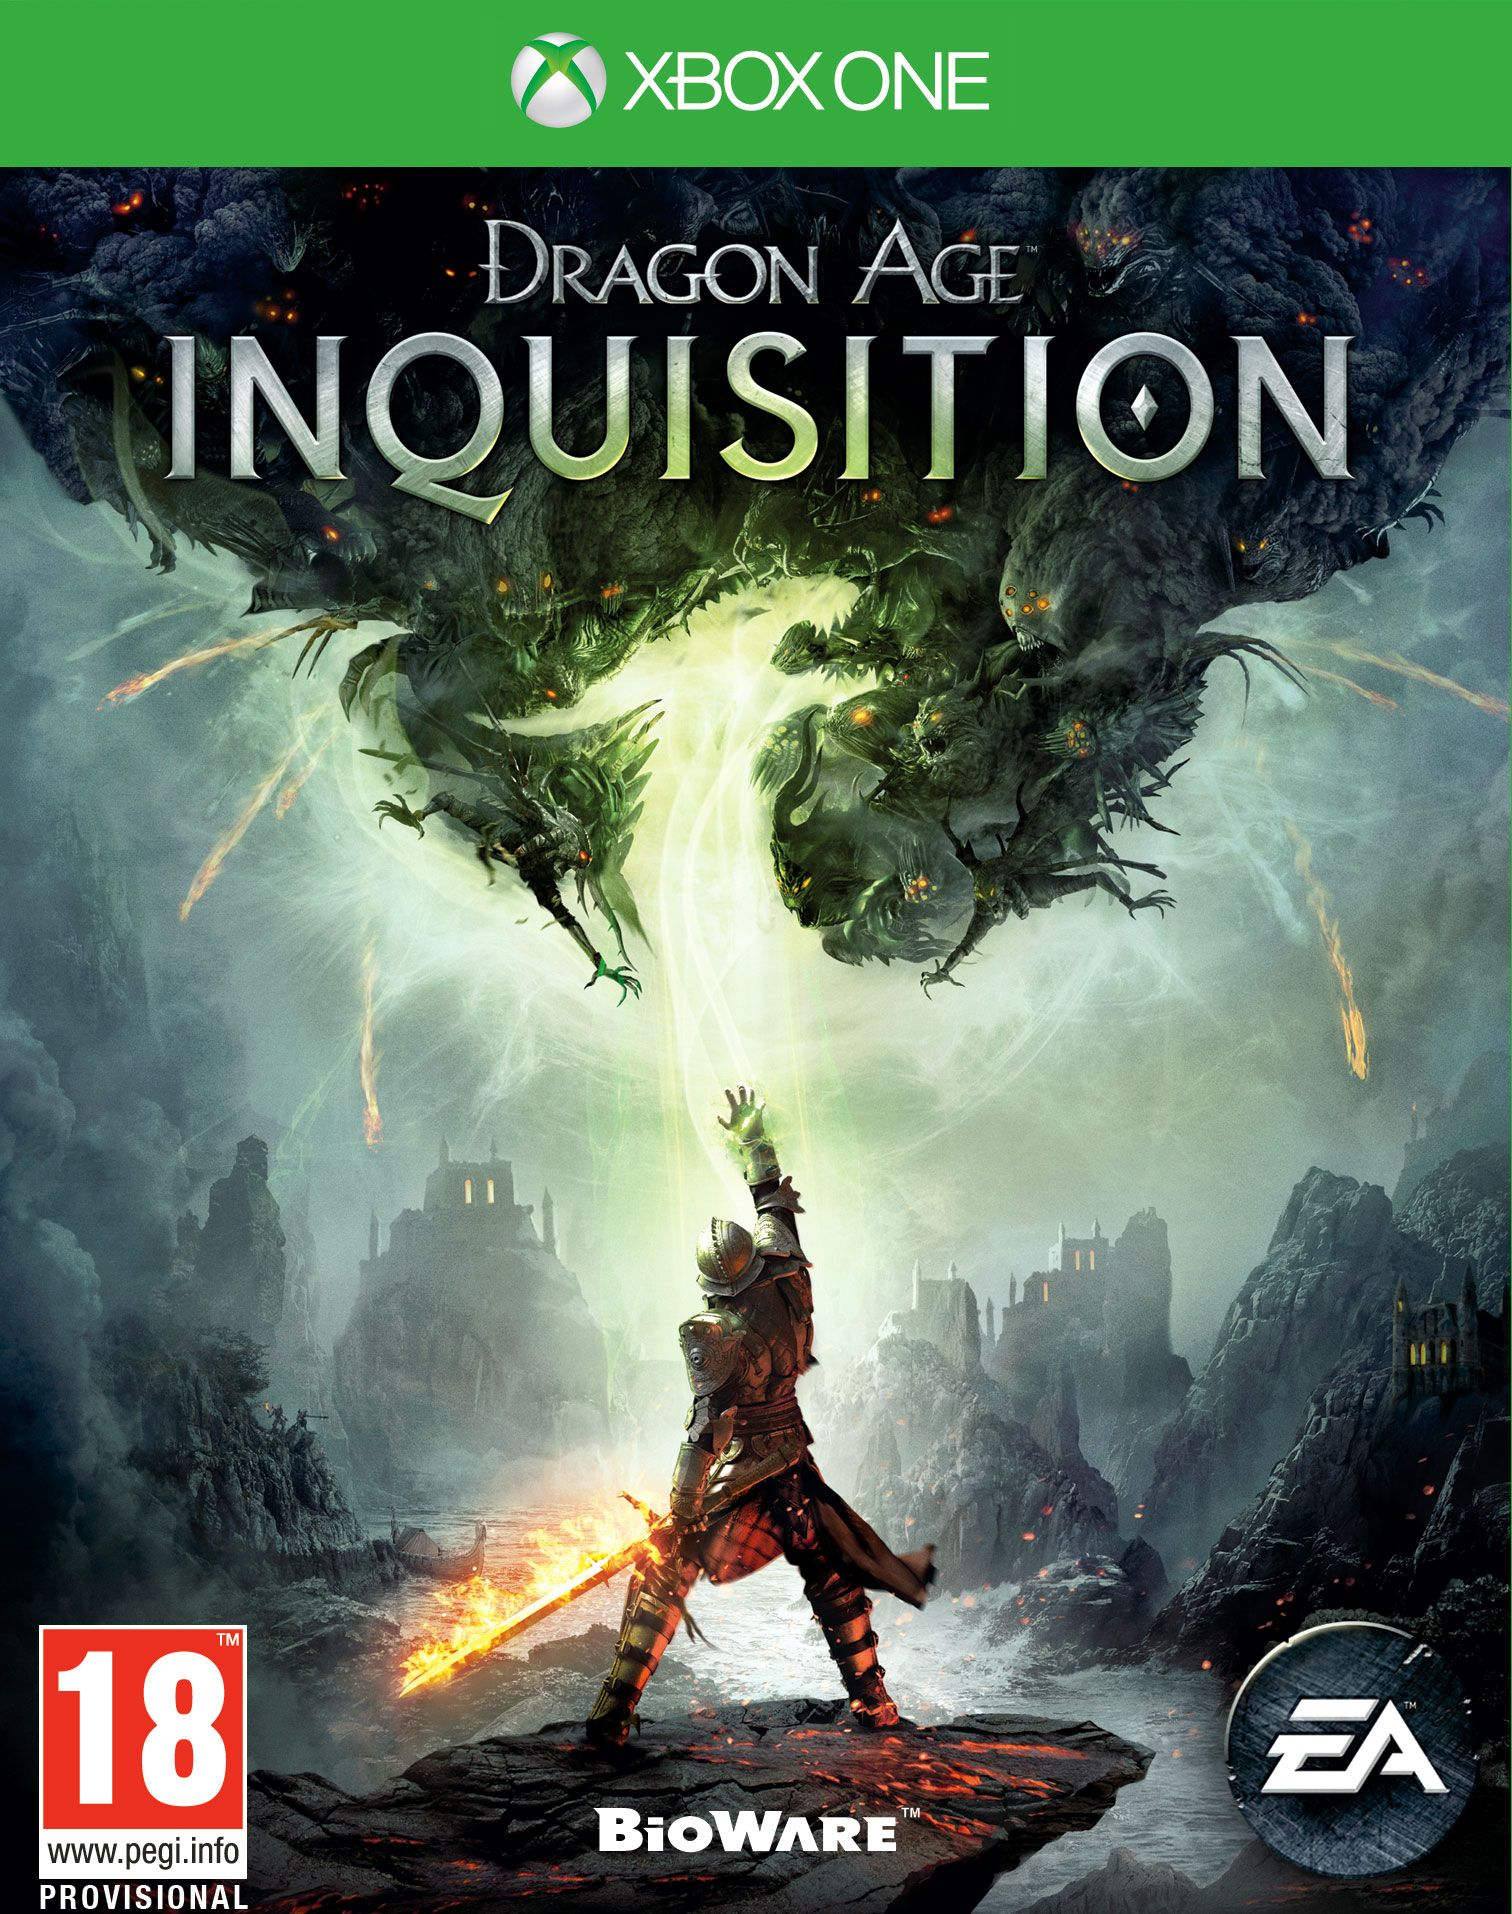 Dragon Age III (3): Inquisition /Xbox One